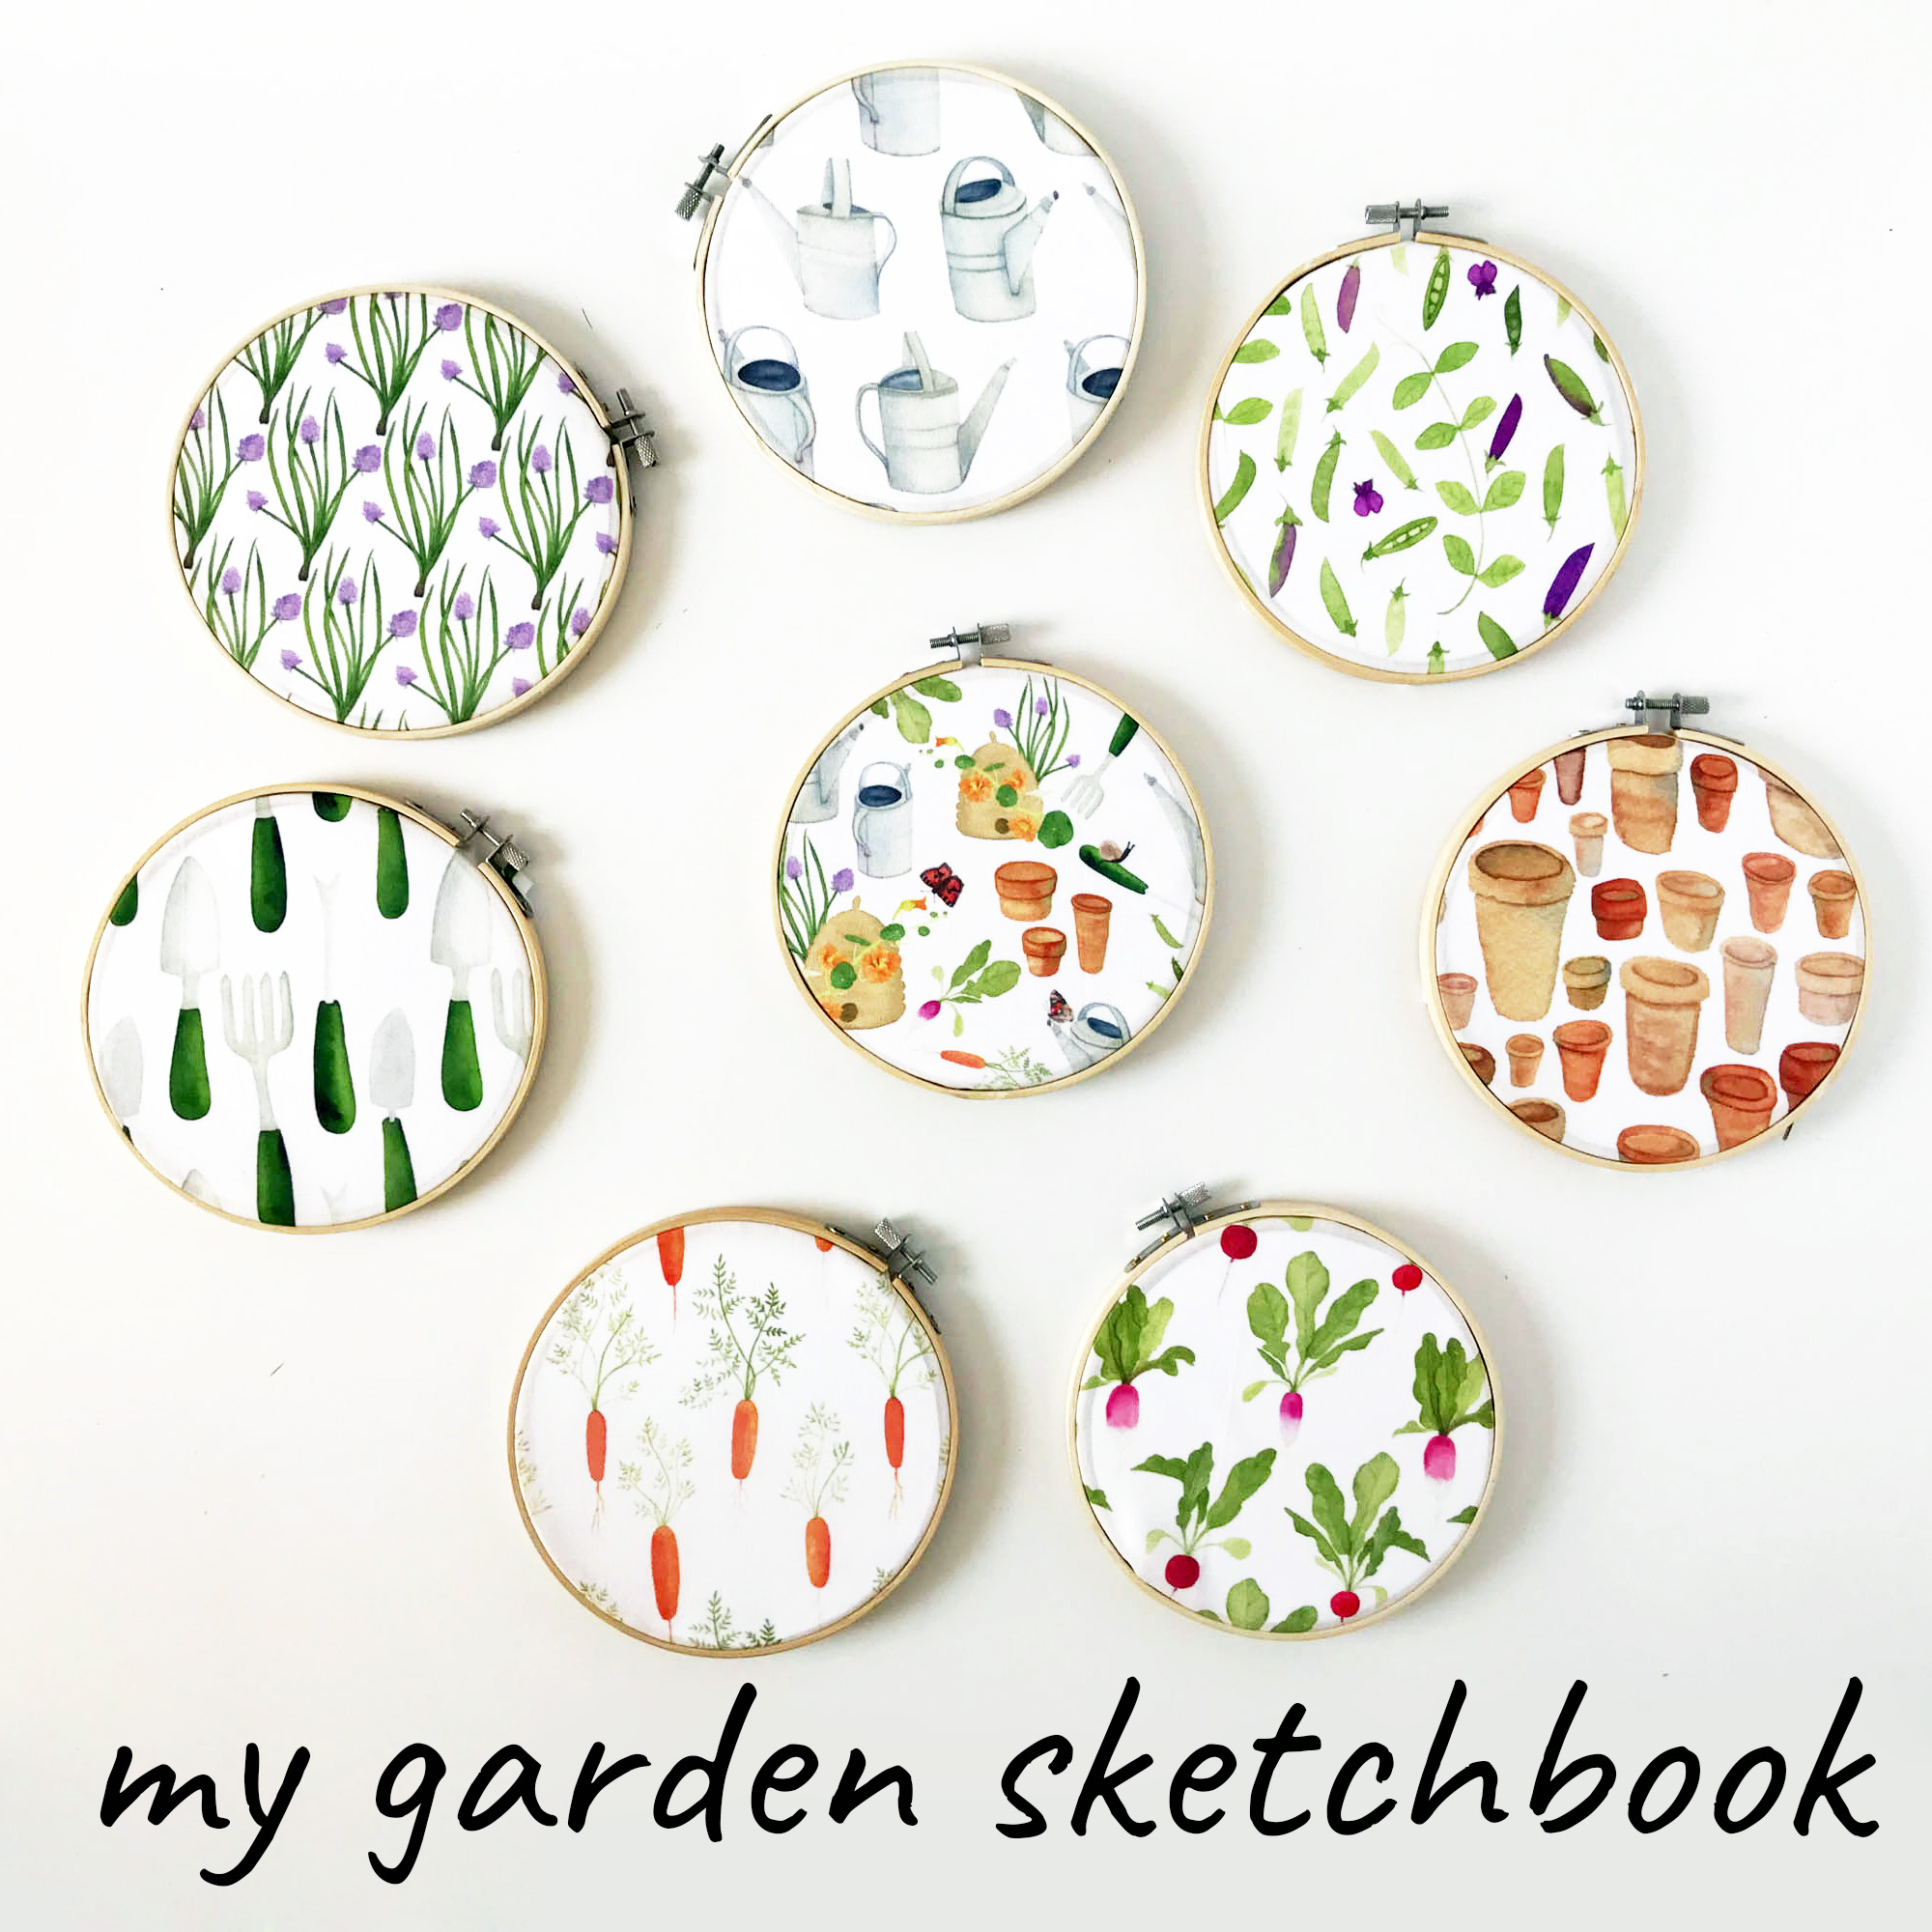 My Garden Sketchbook a Fabric Collection by Anne Butera